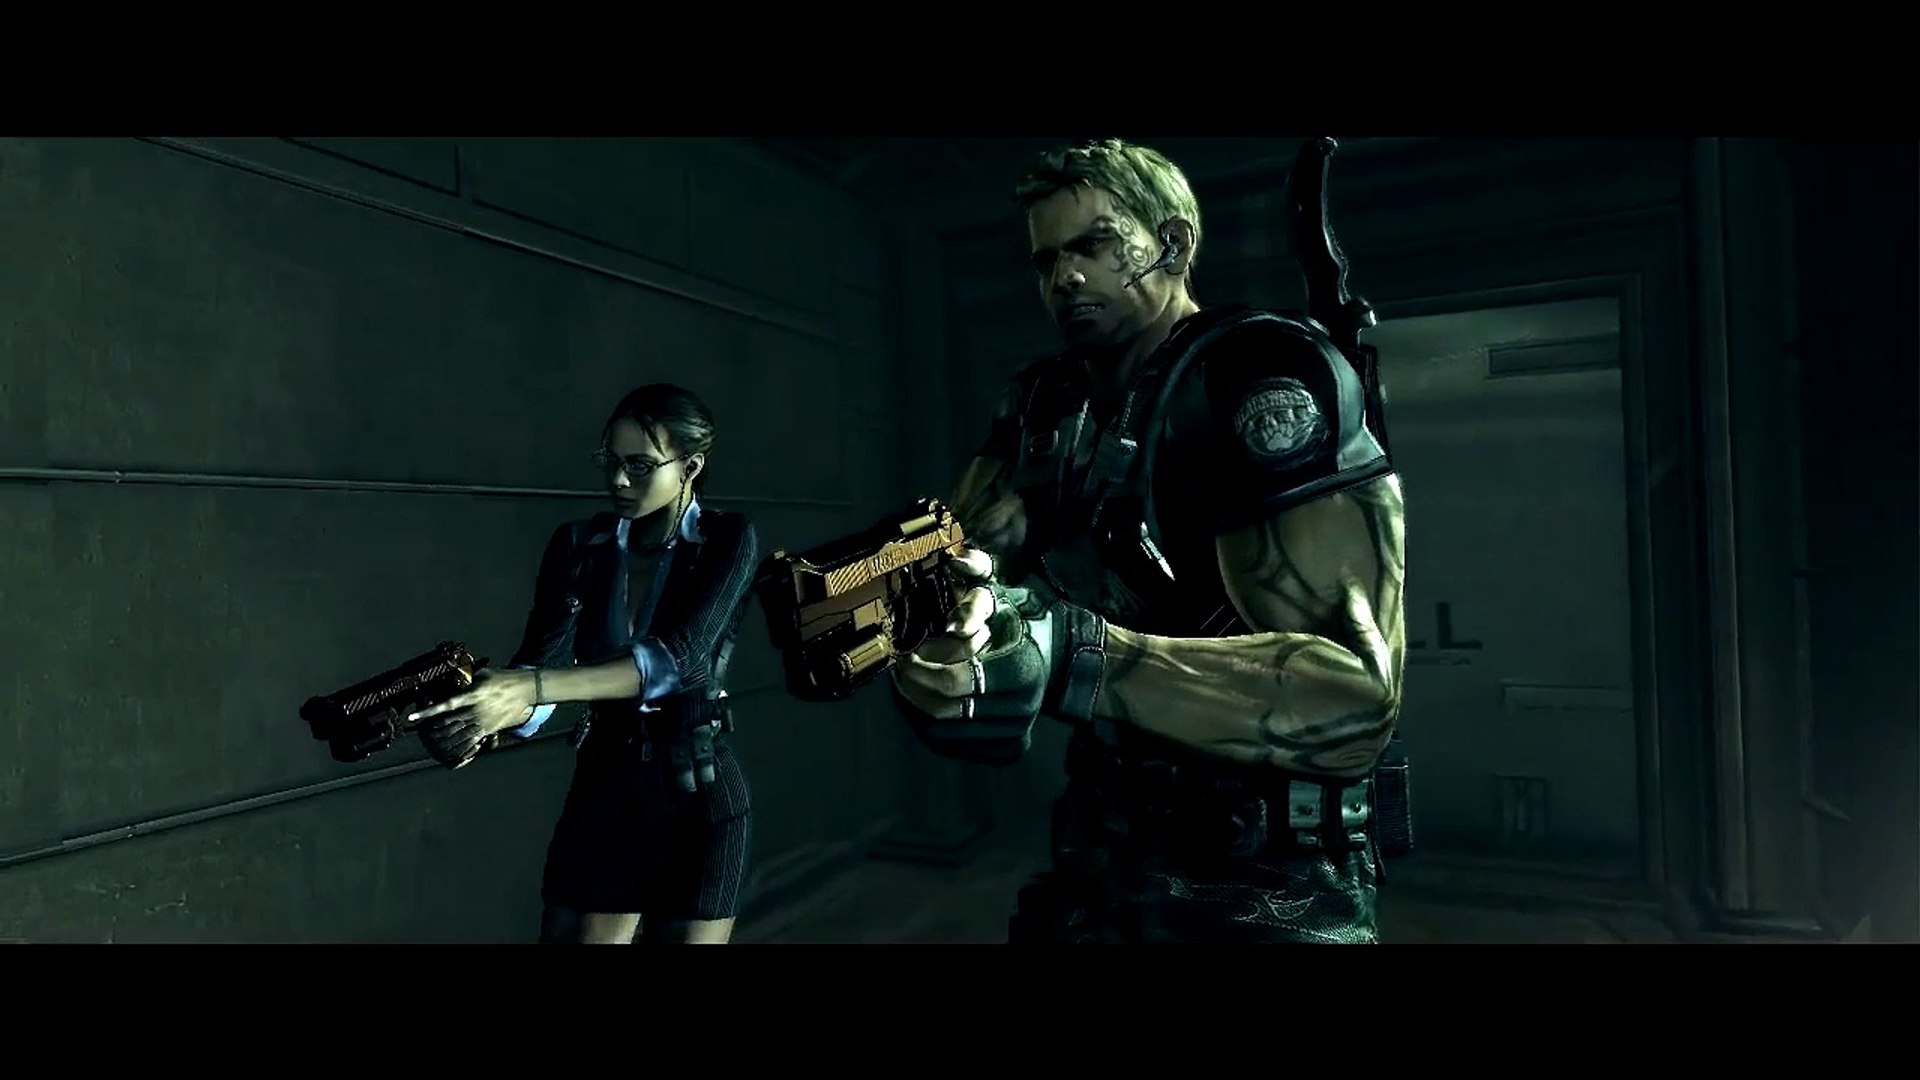 Hd Resident Evil 5 Magic Chris Summoned Wesker Shirtless